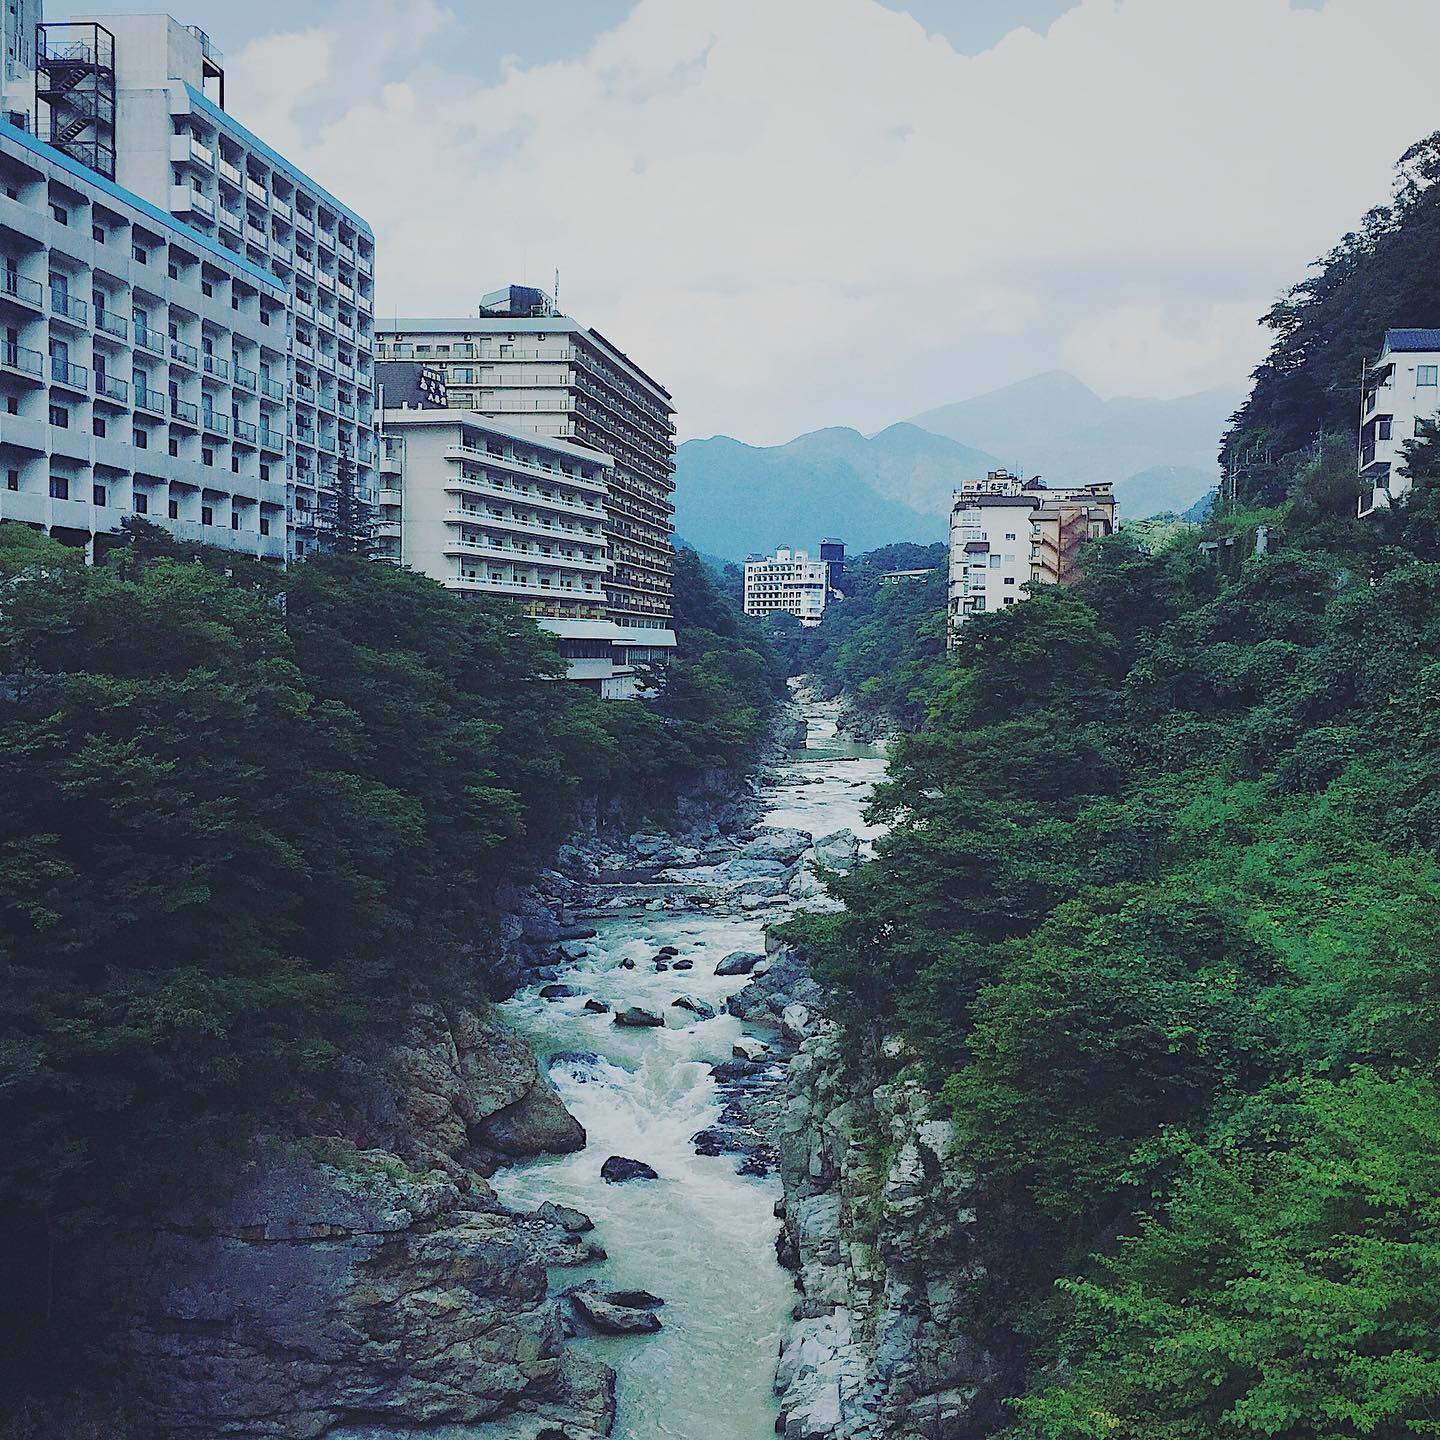 _ Here's this week's update of #shootinjapanfrom AOI Global at Kinugawa Onsen, Nikko and Tochigi prefecture!  Kinugawa Onsen is s a popularhot springresort townthat houses many ryokans(a type of traditional Japanese inn) and hotels along the Kinugawa River.  #aoiglobal #filmproduction #productioncompany #filmmakersworld #productionservices #shootinglocation #filmwork #filmmakinglife #onlocationshoot